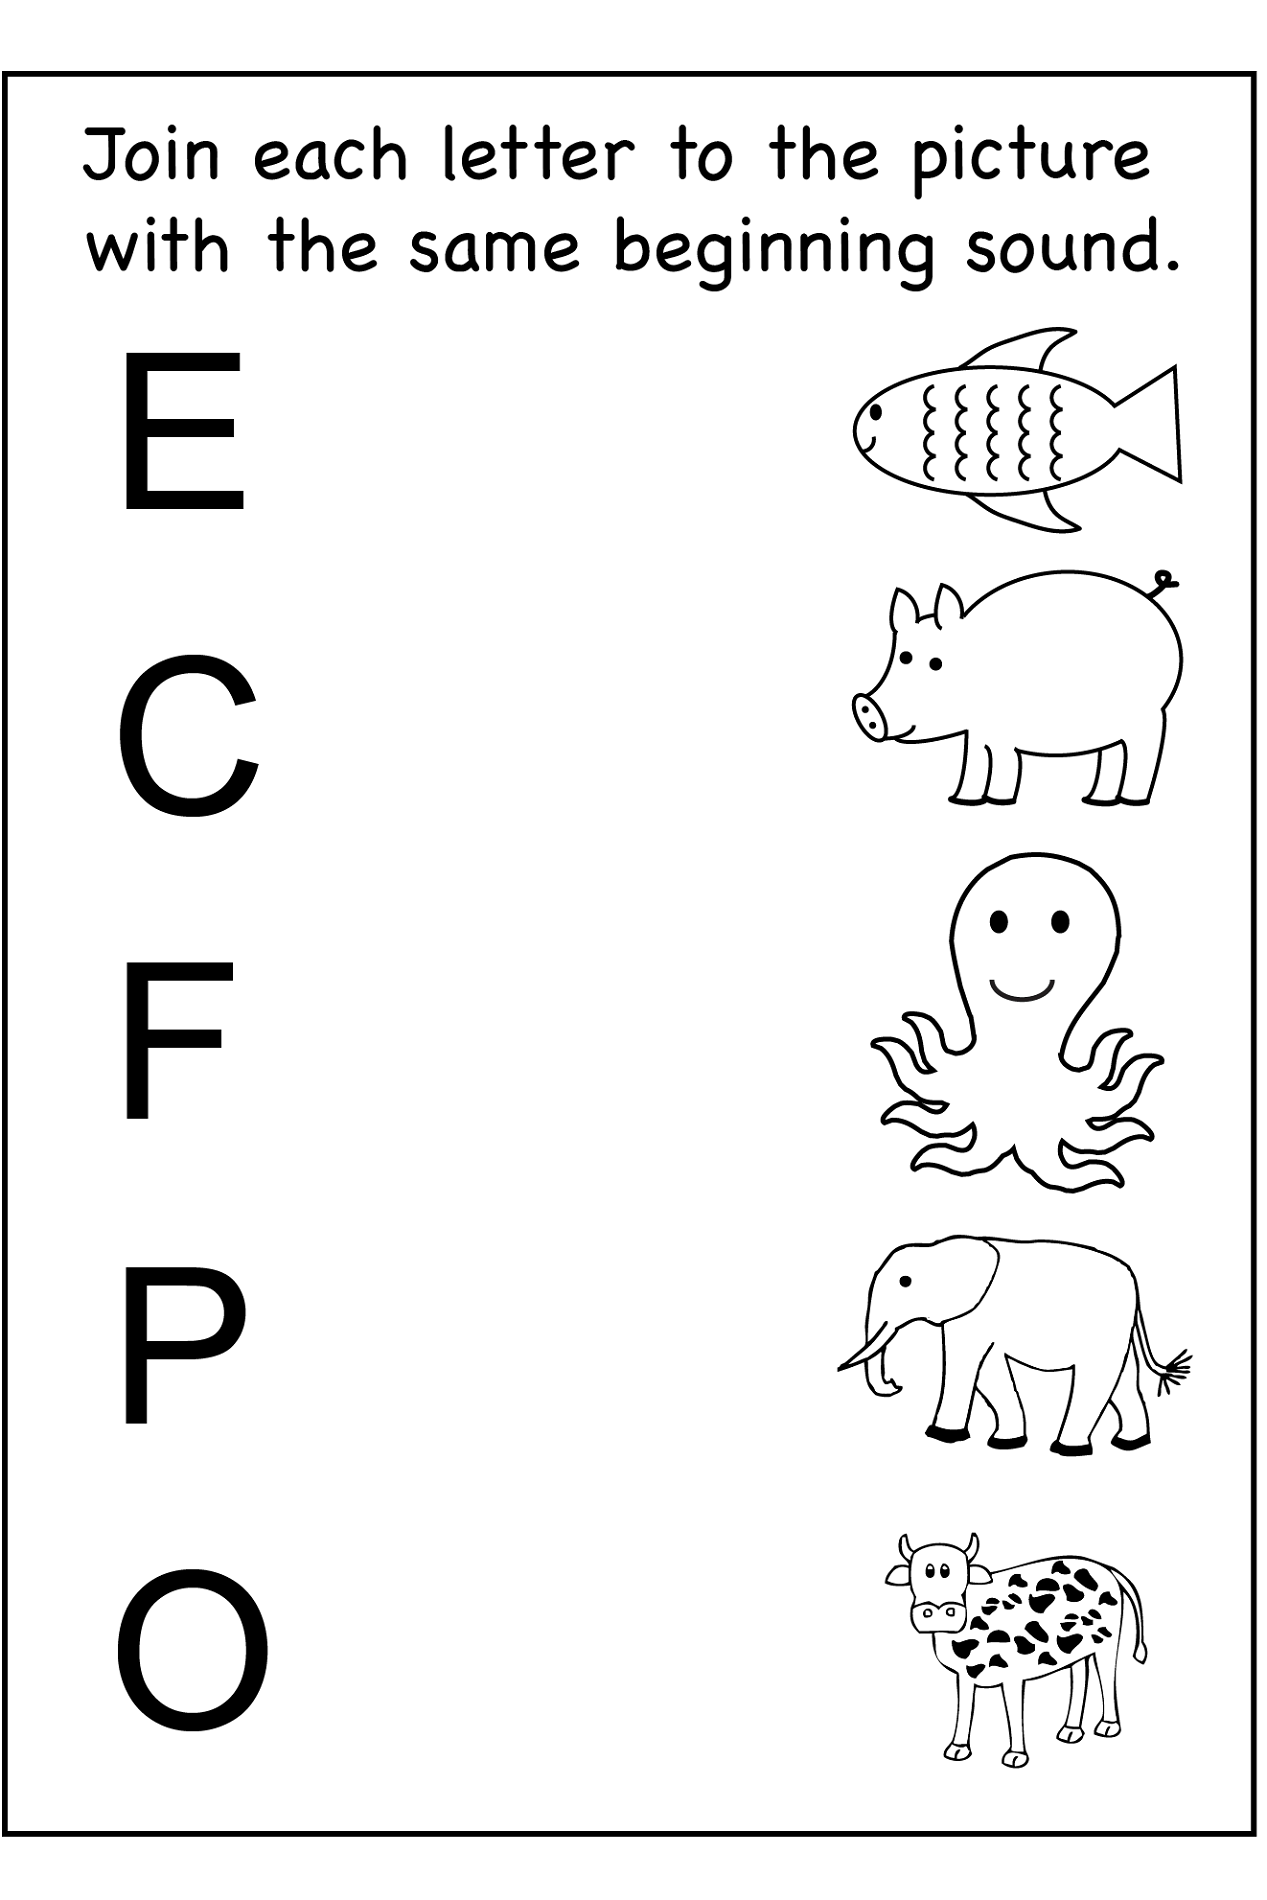 15 Best Worksheets Printables Kindergarten Images On All